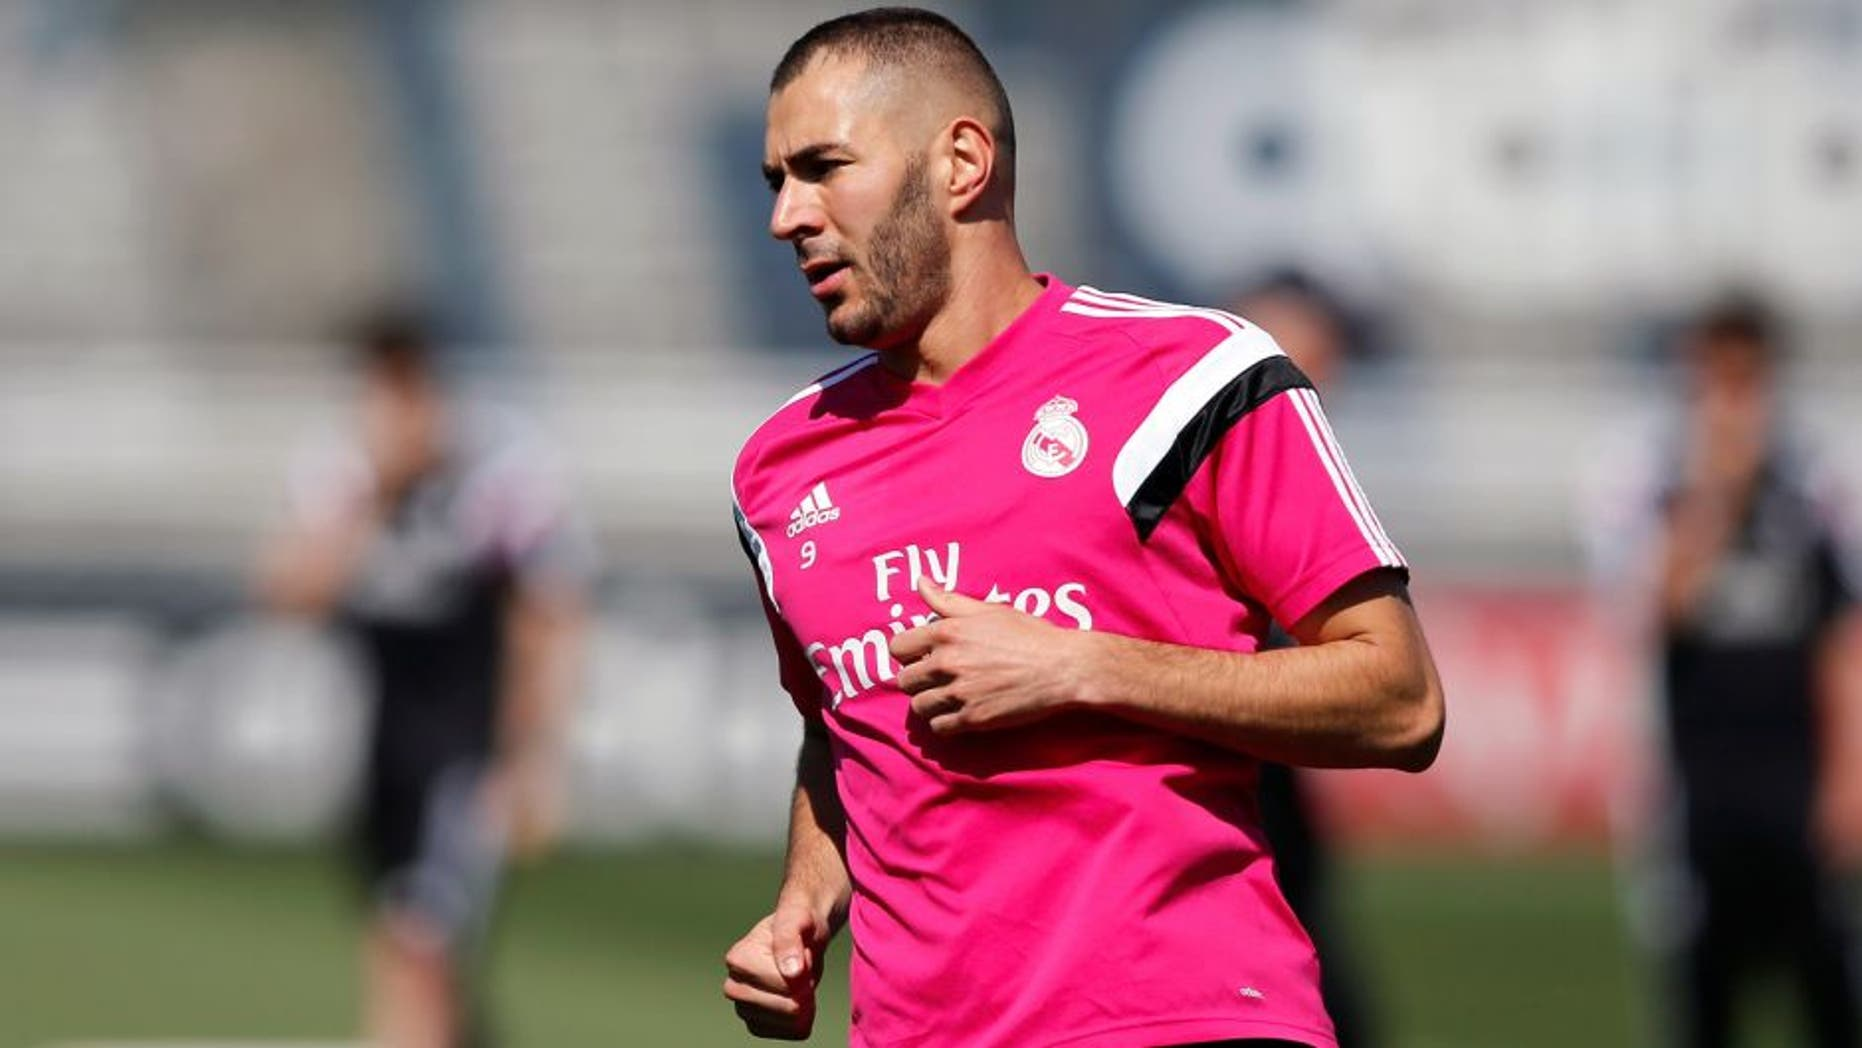 MADRID, SPAIN - MAY 08: Karim Benzema of Real Madrid in action during a training session at Valdebebas training ground on May 8, 2015 in Madrid, Spain. (Photo by Victor Carretero/Real Madrid via Getty Images)